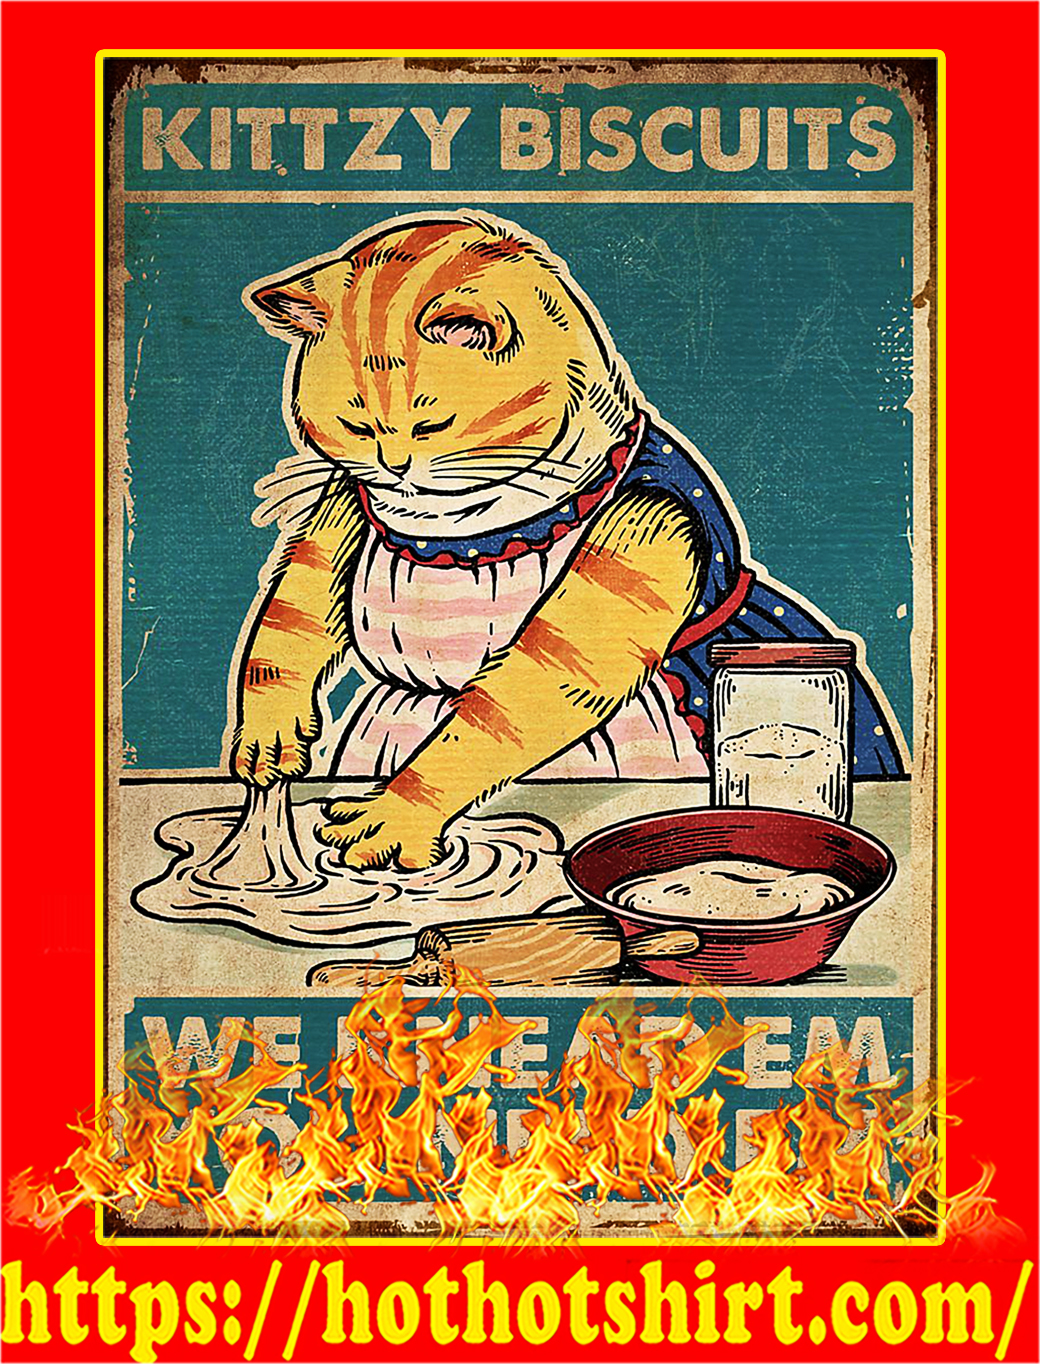 Cat kittzy biscuits we knead em you need em poster - A3